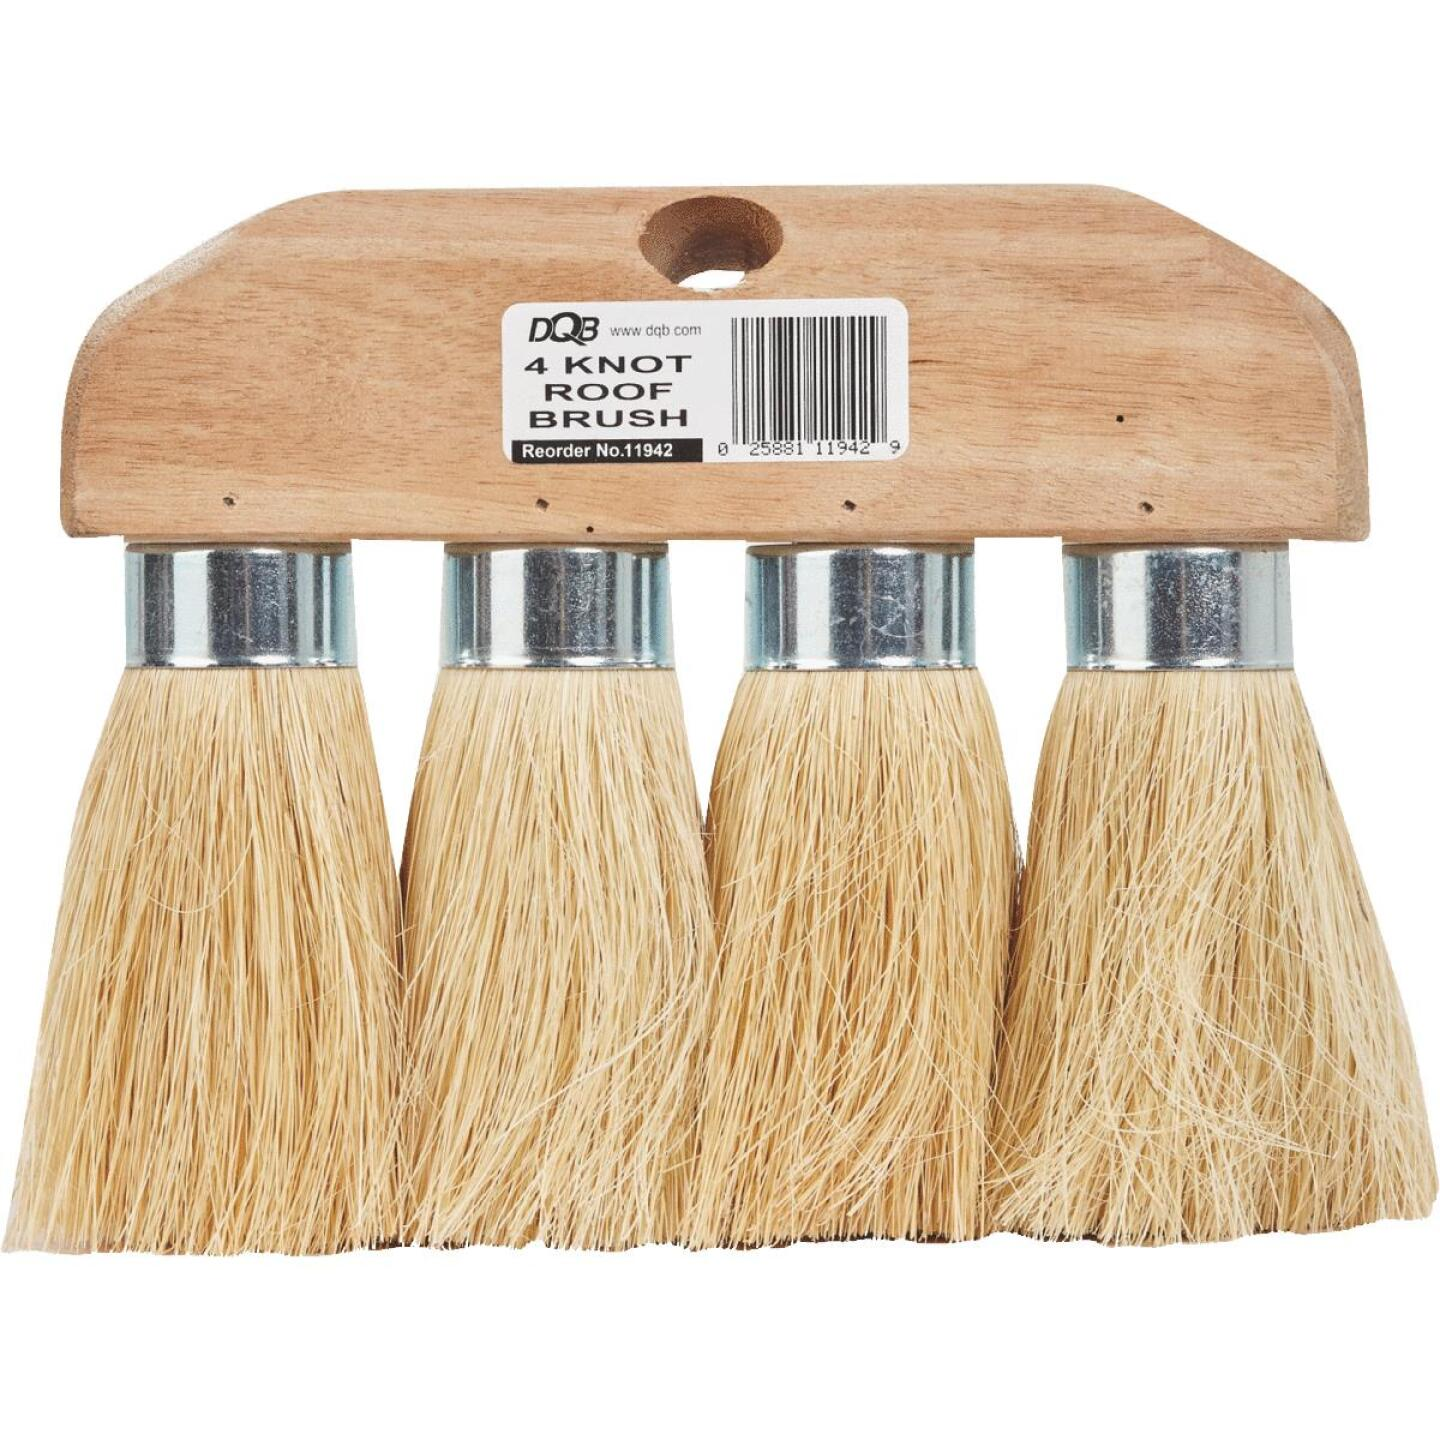 DQB 3-1/2 In. x 4-Knot Tampico Roof Brush Image 2